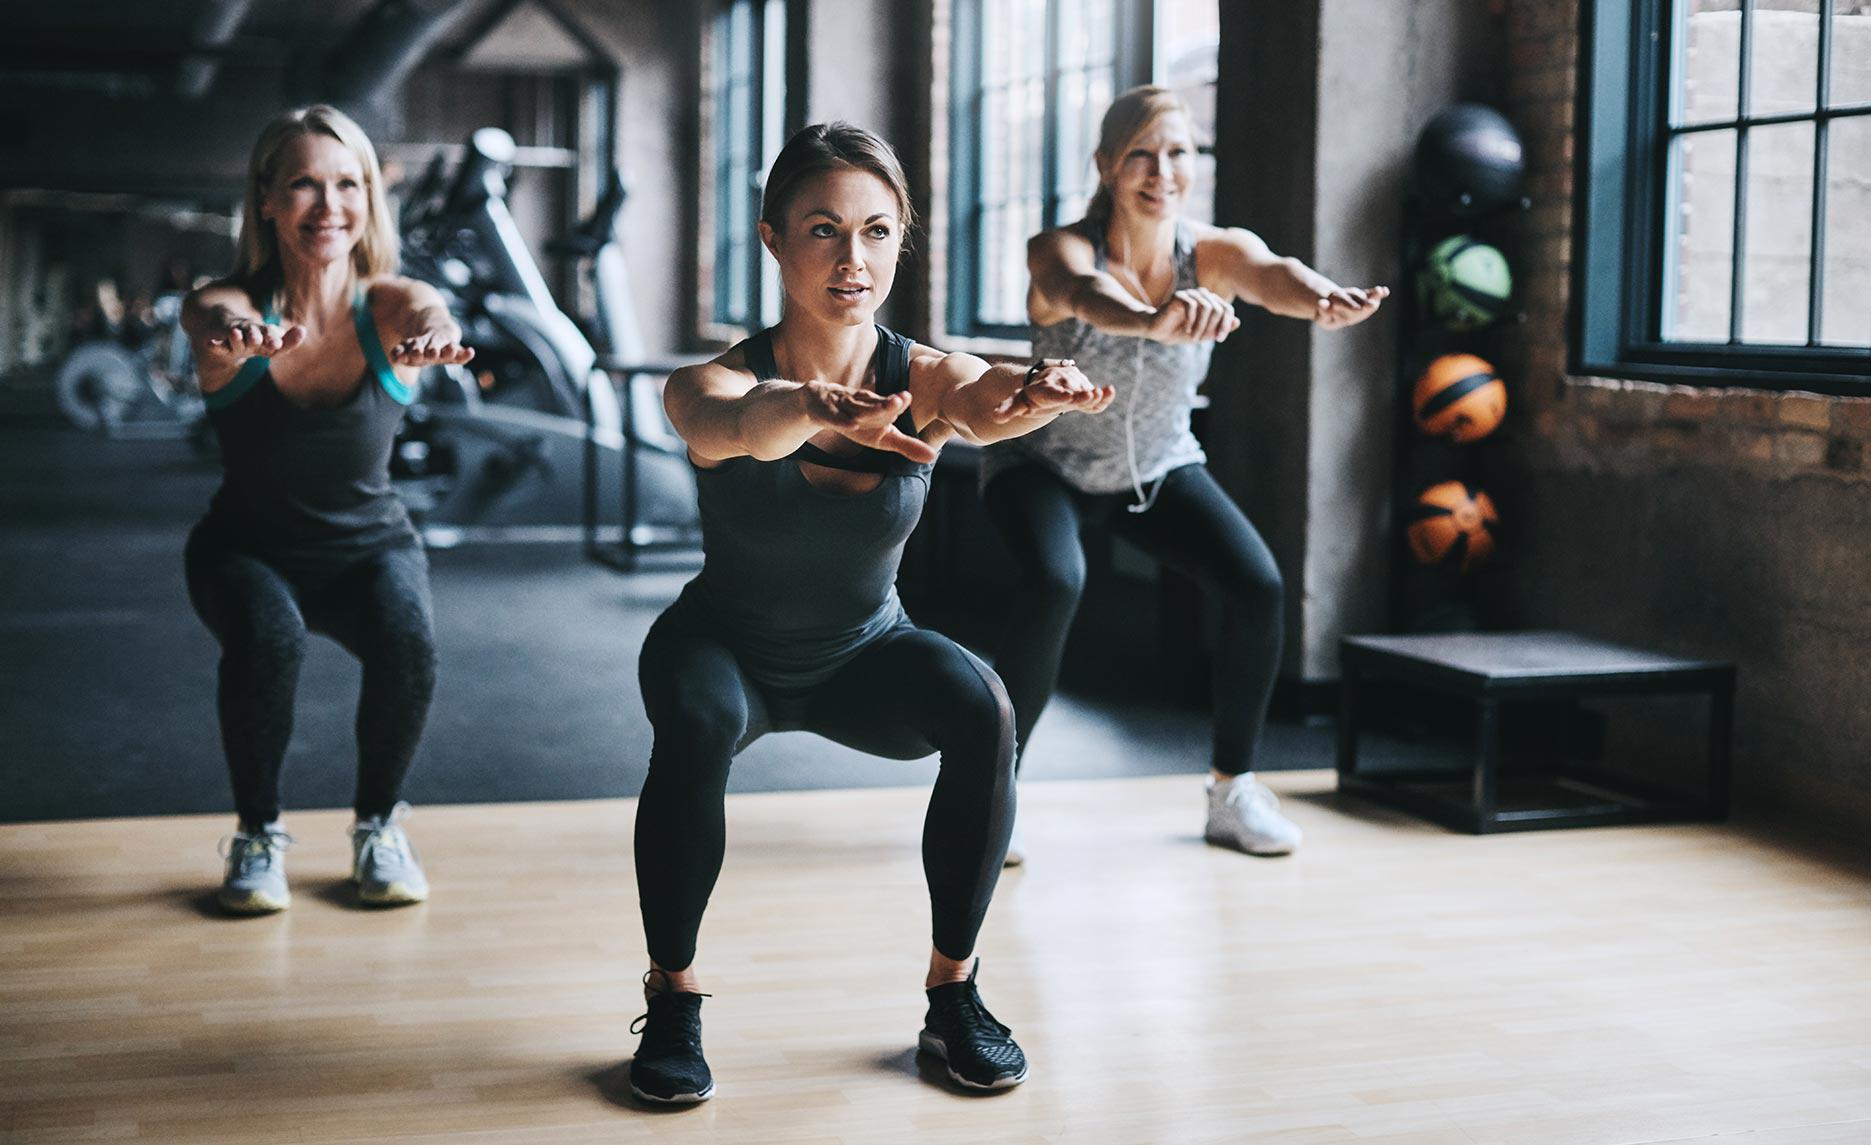 The Push Pull Legs Routine That Works For Literally Everyone